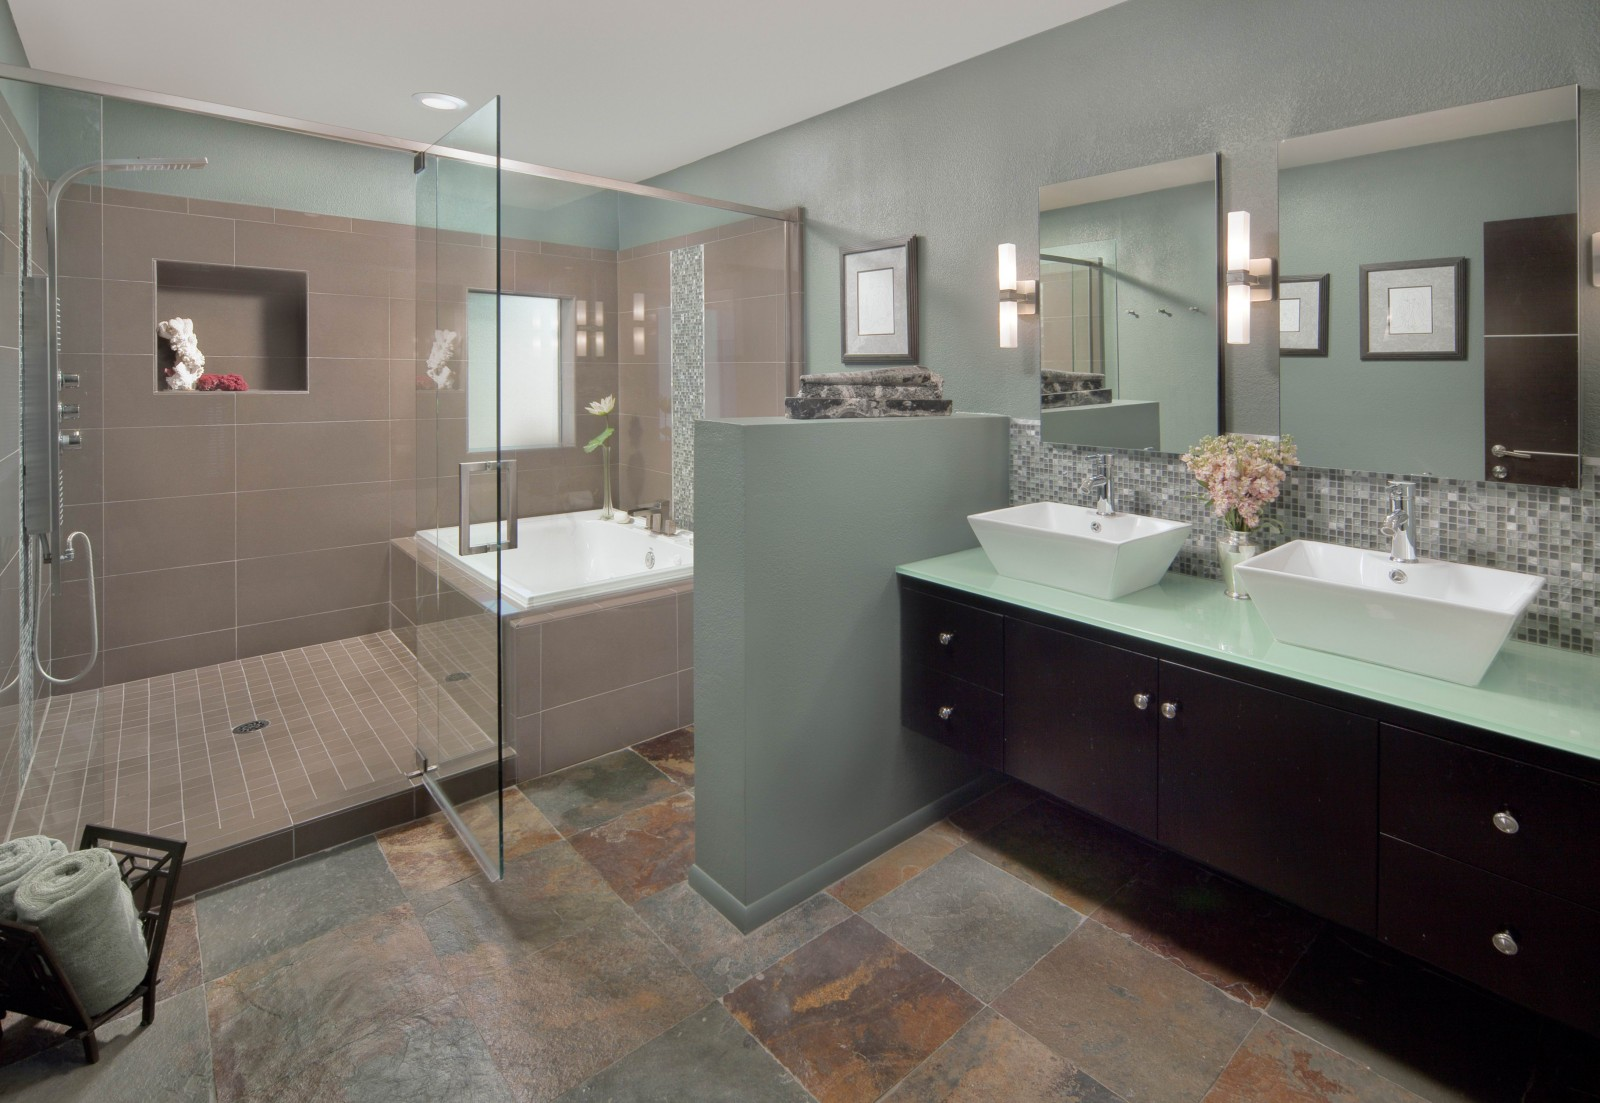 Revamping your master bathroom peter mickus for Bathroom sink remodel ideas